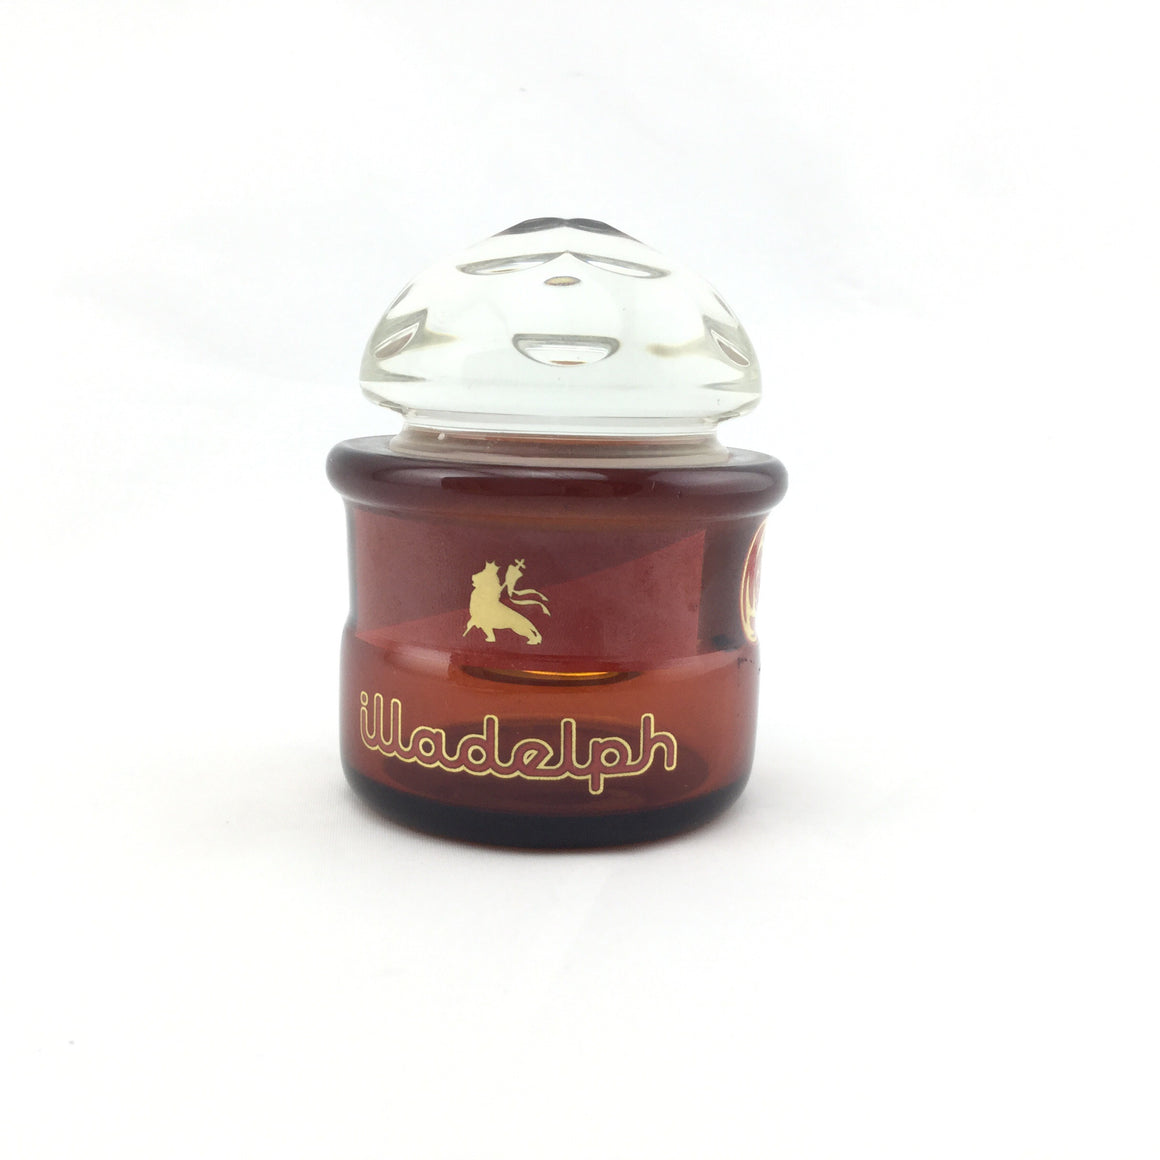 Illadelph Limited Edition Jar With Milli